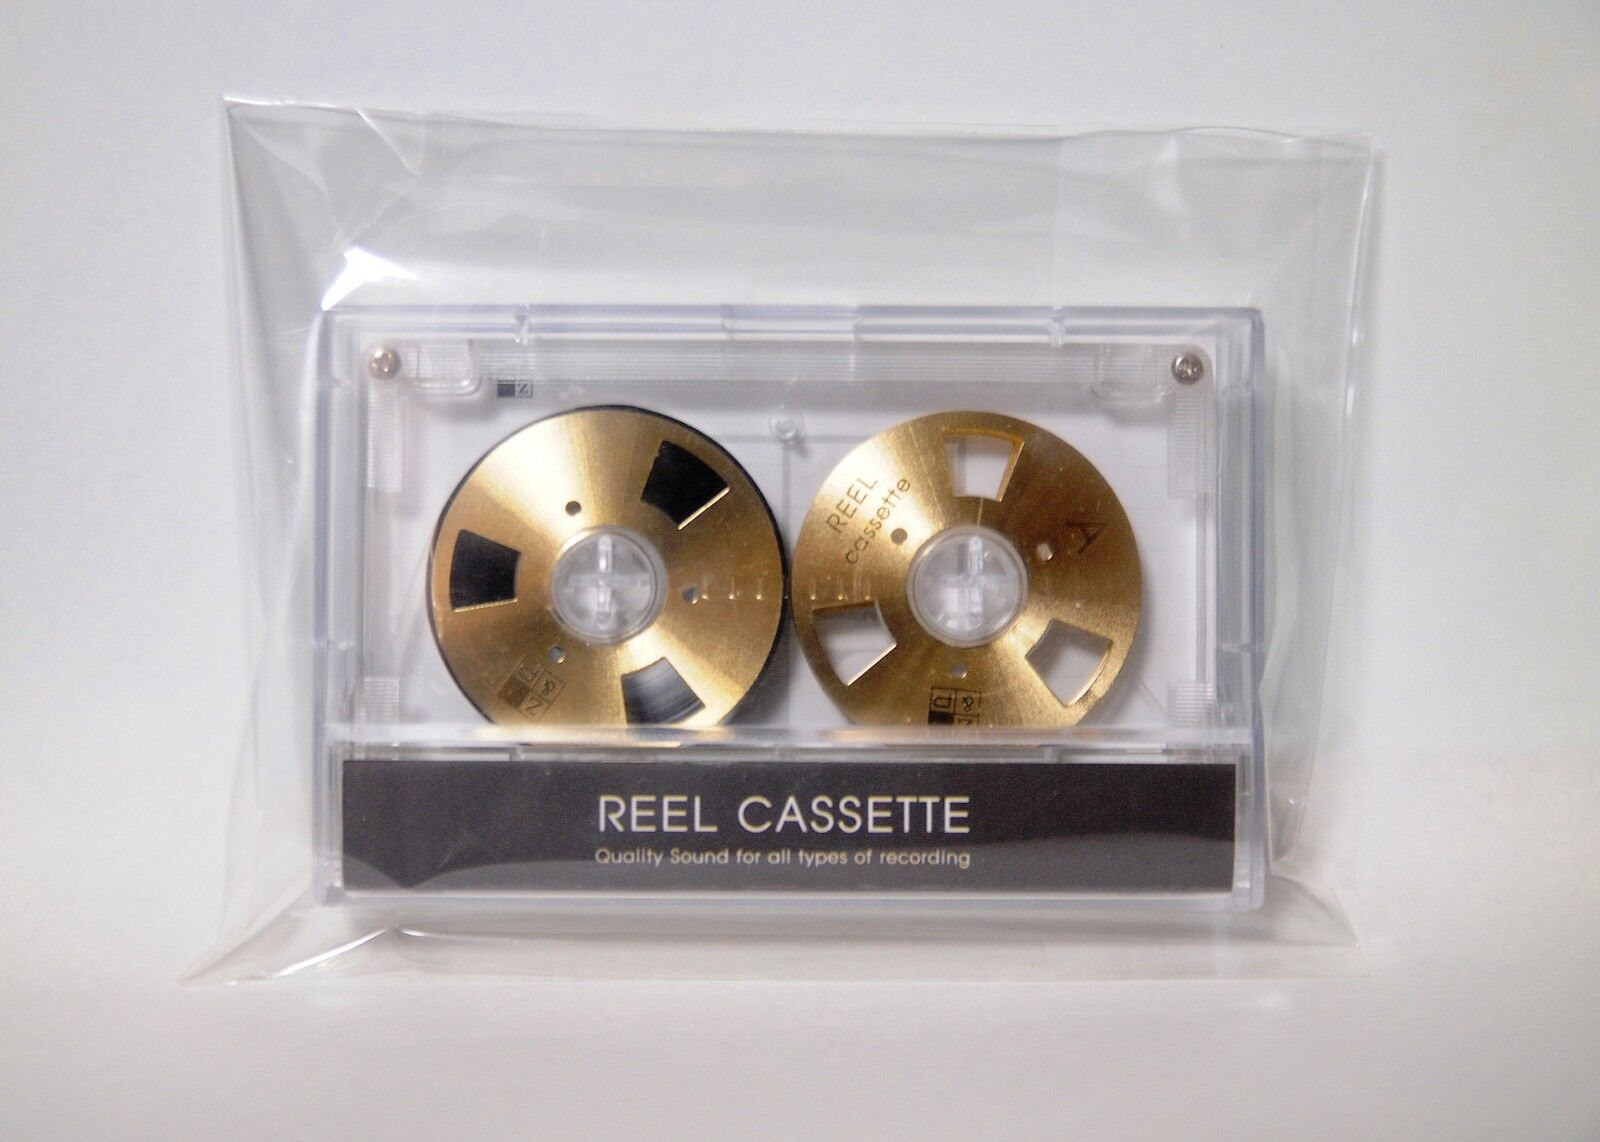 Reel to Reel cassette tape New self-made high quality design Gold color